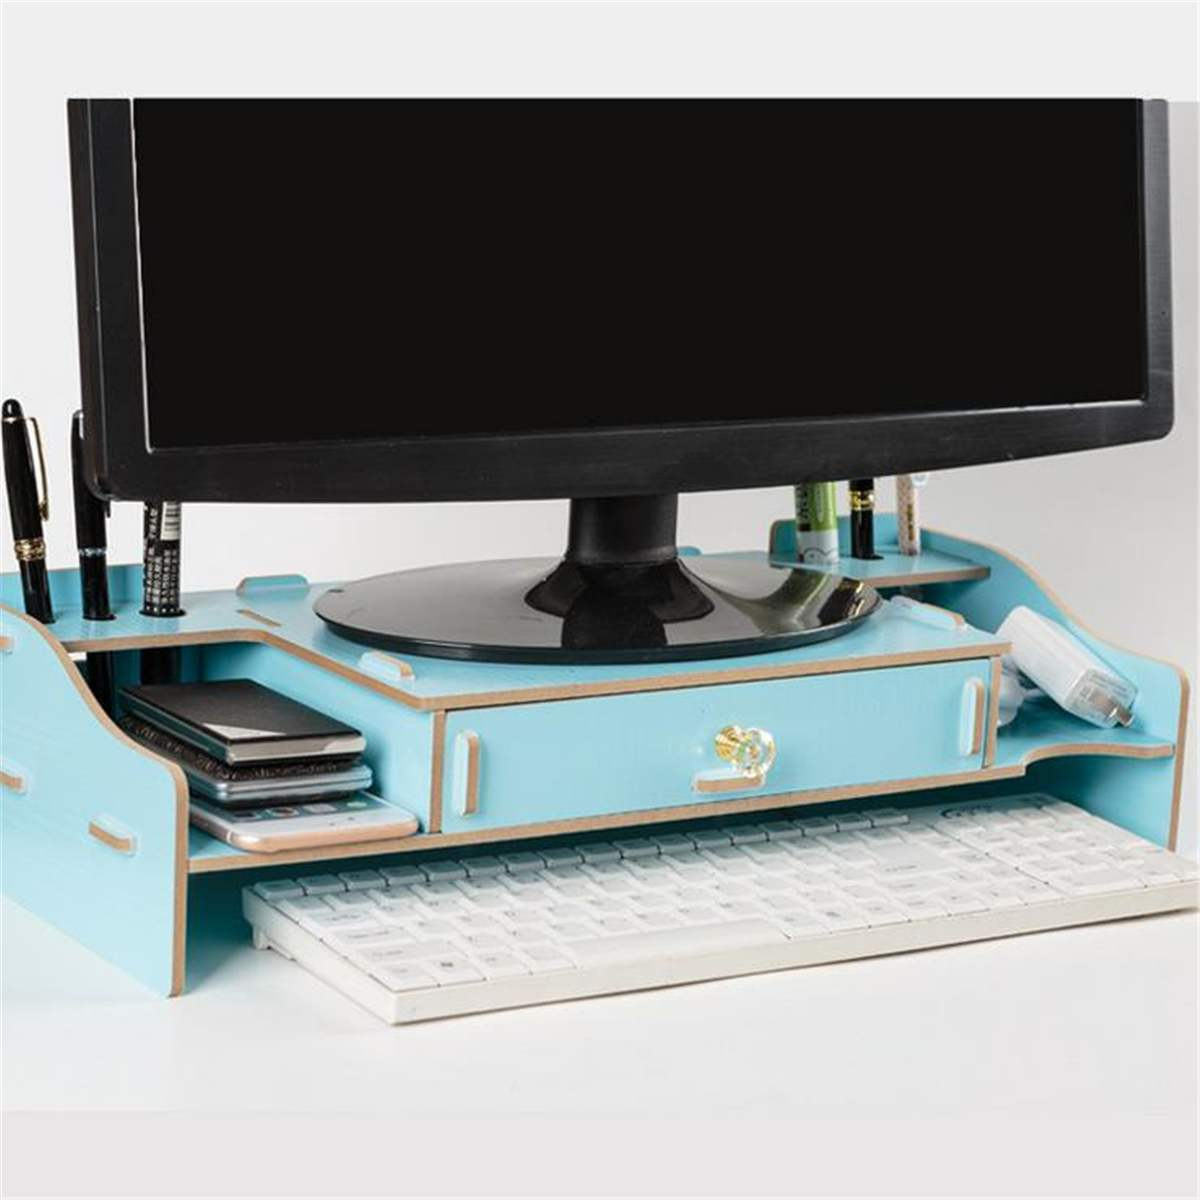 48X20X12cm Wooden Monitor Shelf Plinth Strong Laptop Stand LED LCD Computer Riser Desktop Holder Bracket Home Tablet Lapdesks